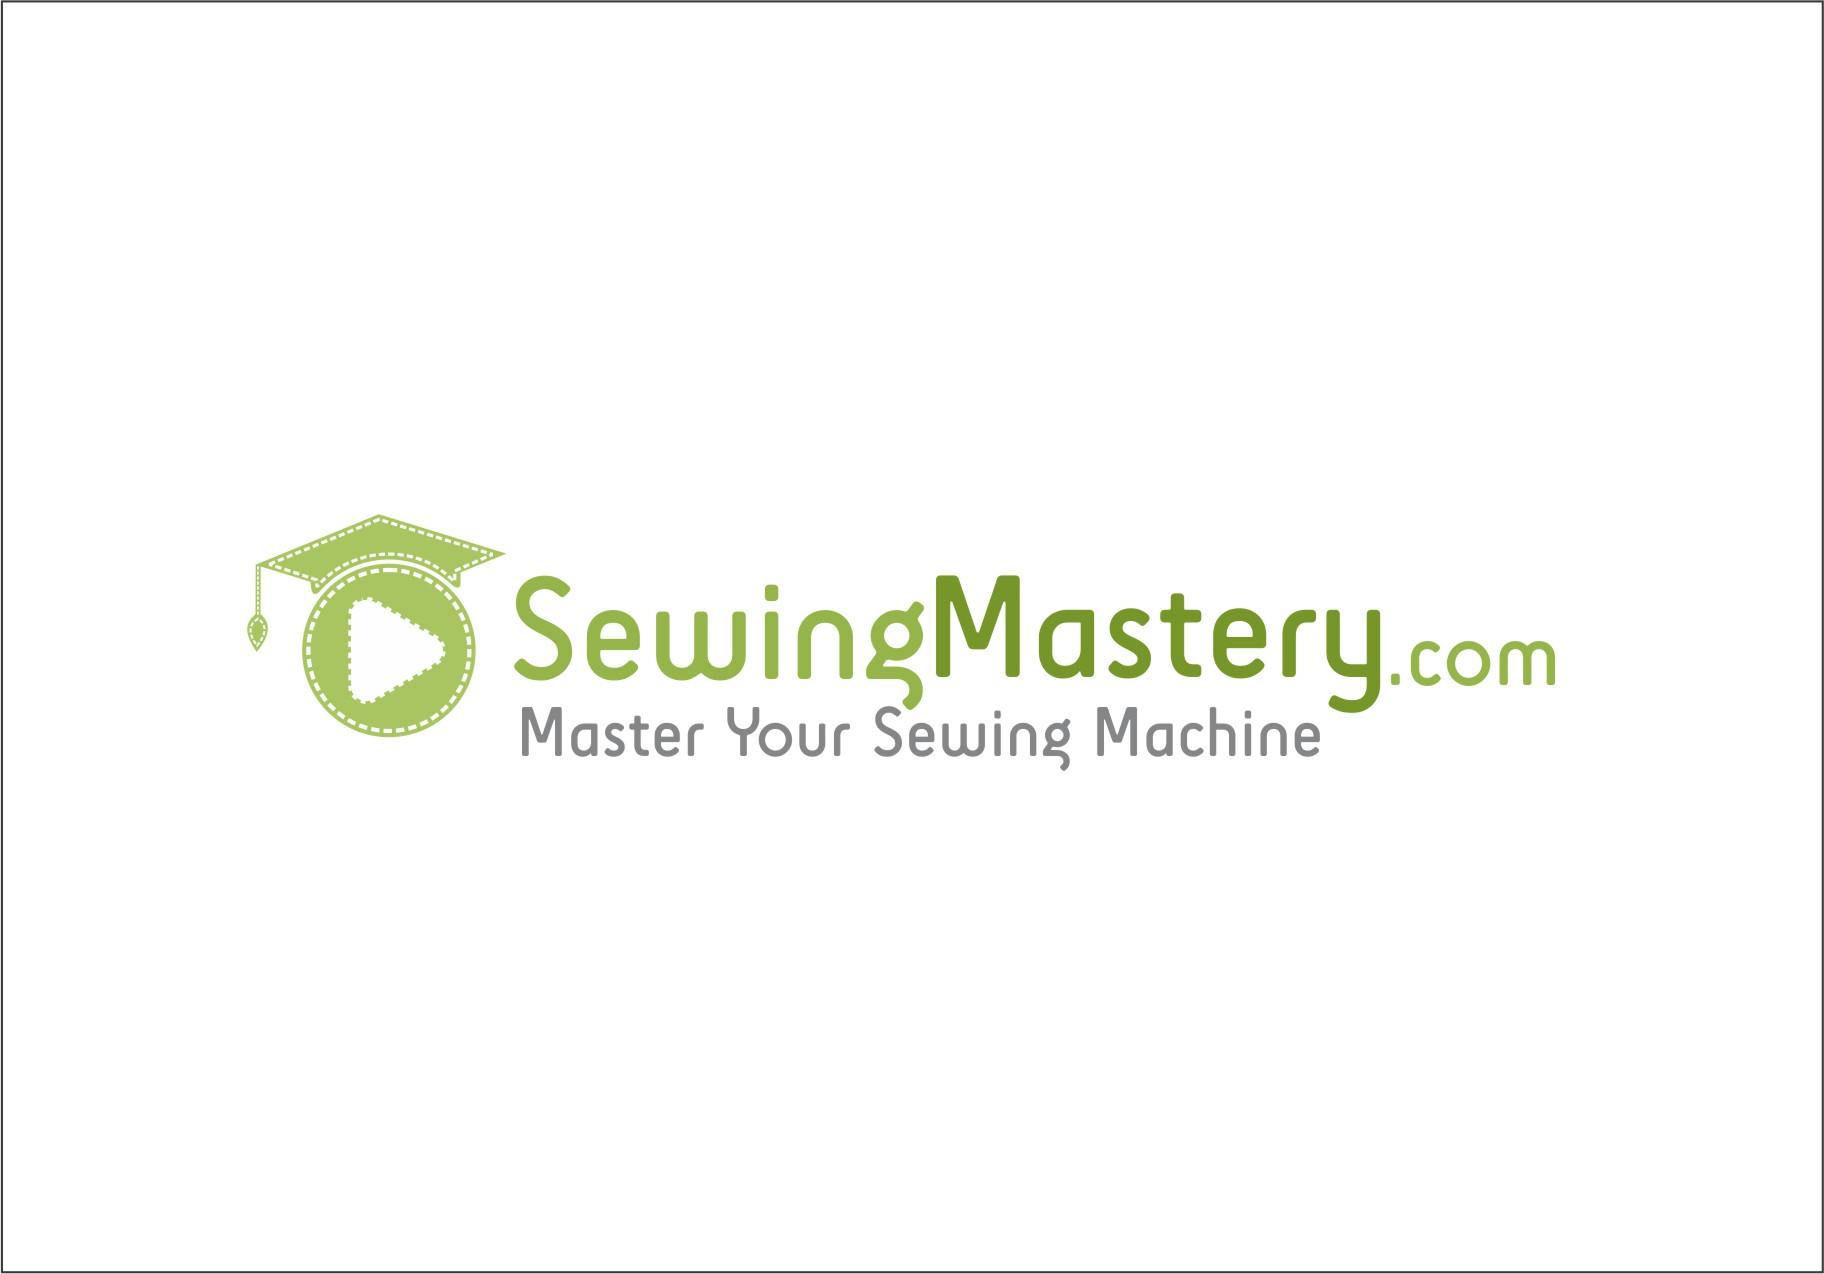 New logo wanted for SewingMastery.com